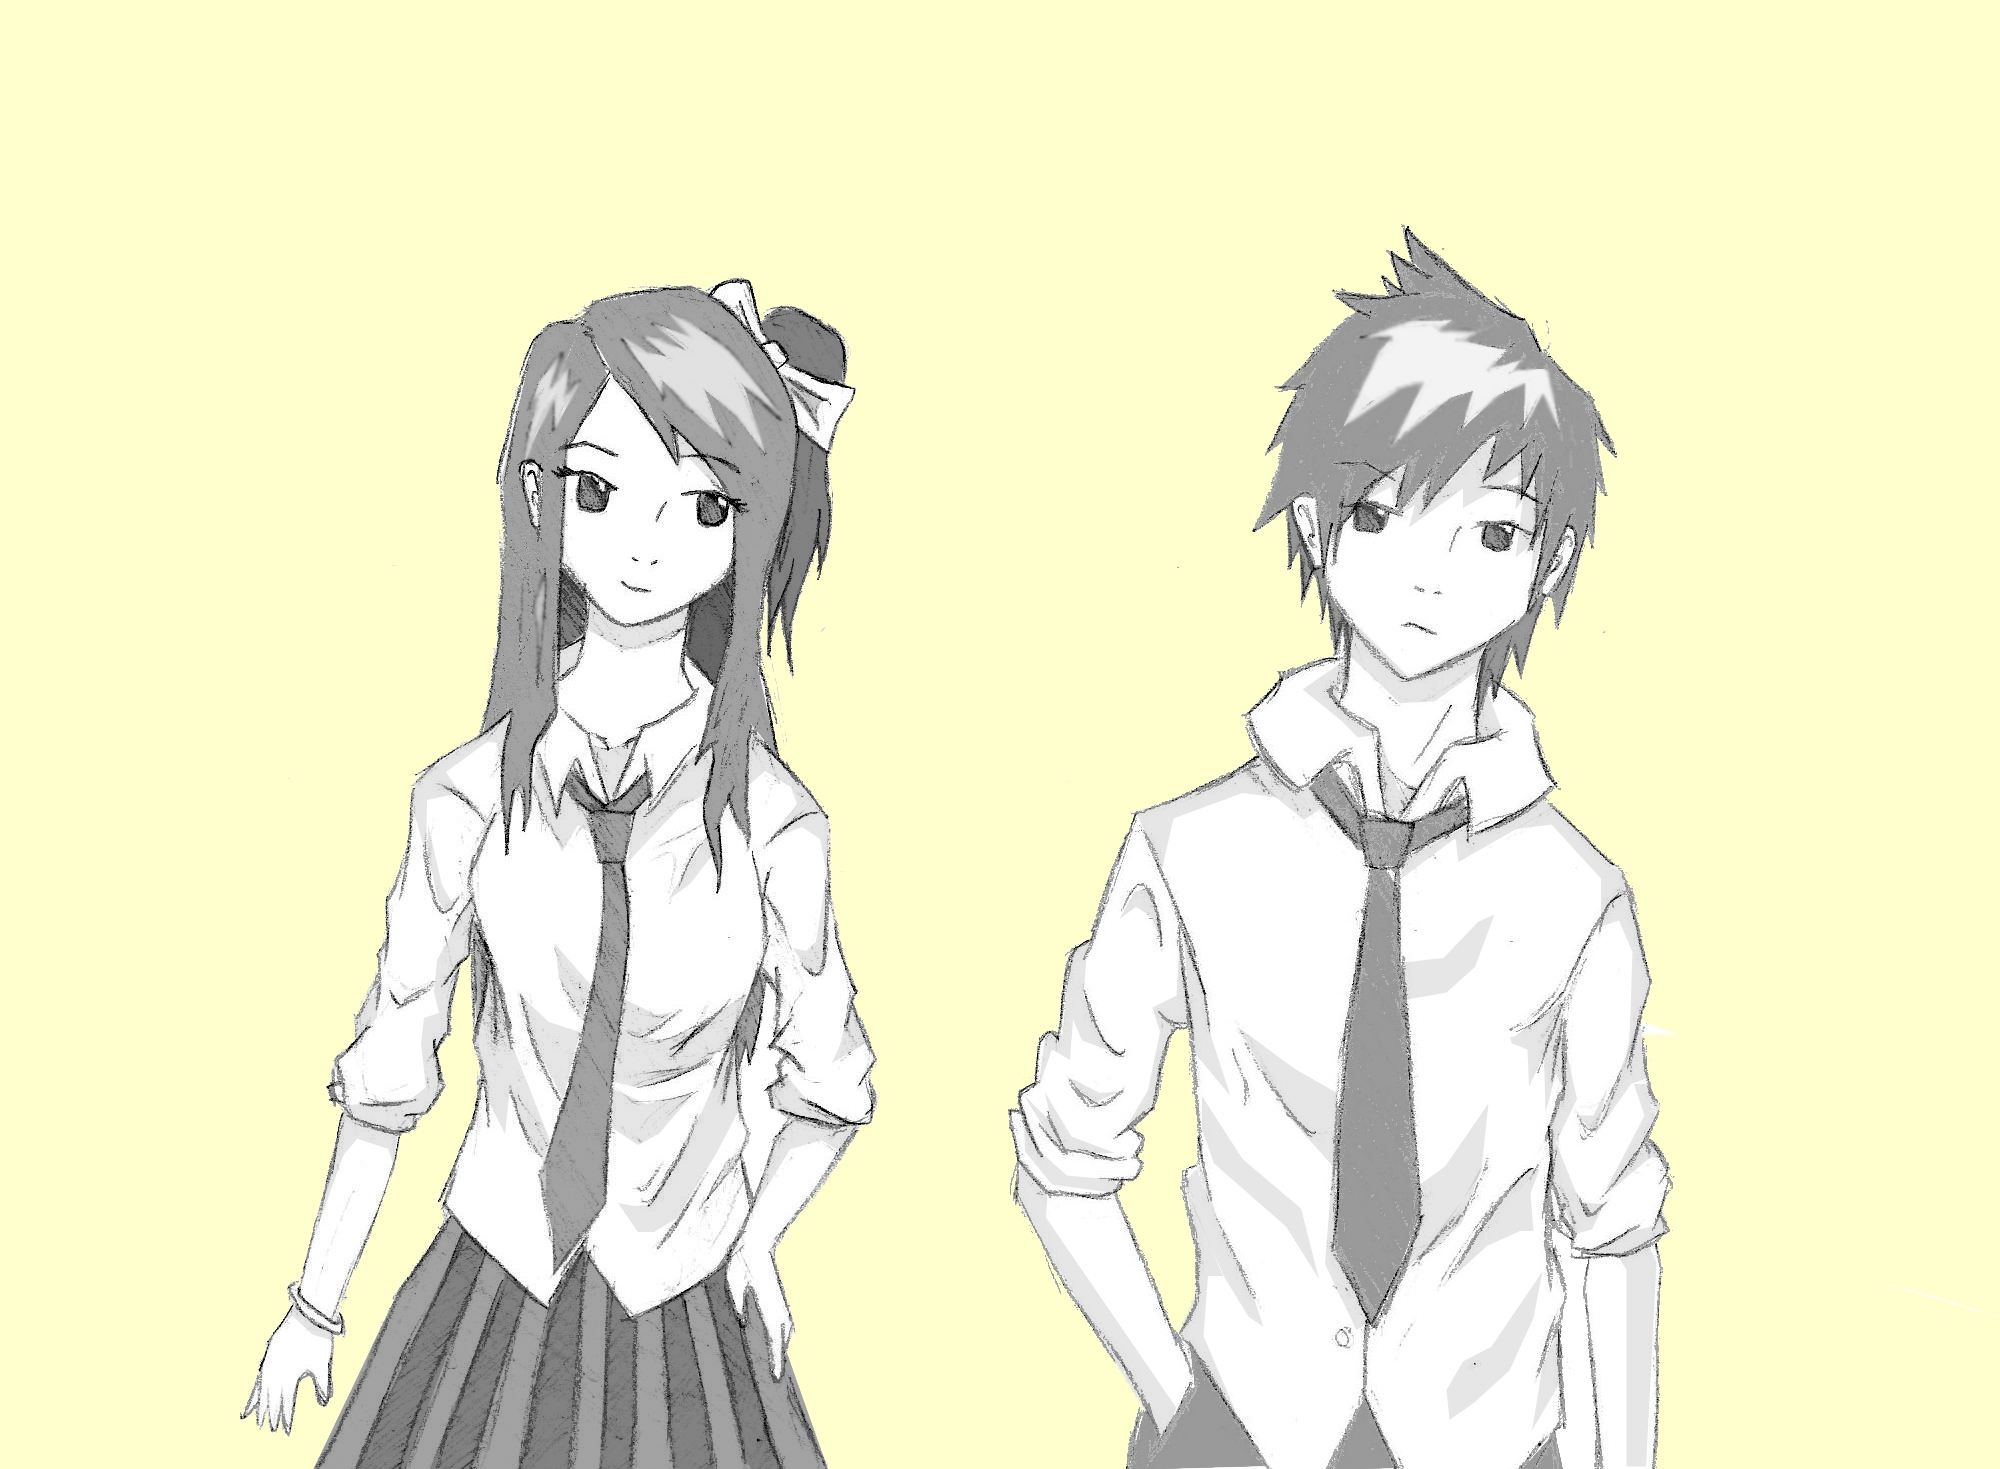 Anime Boy And Girl drawing of a girl and boy holding hands at getdrawings